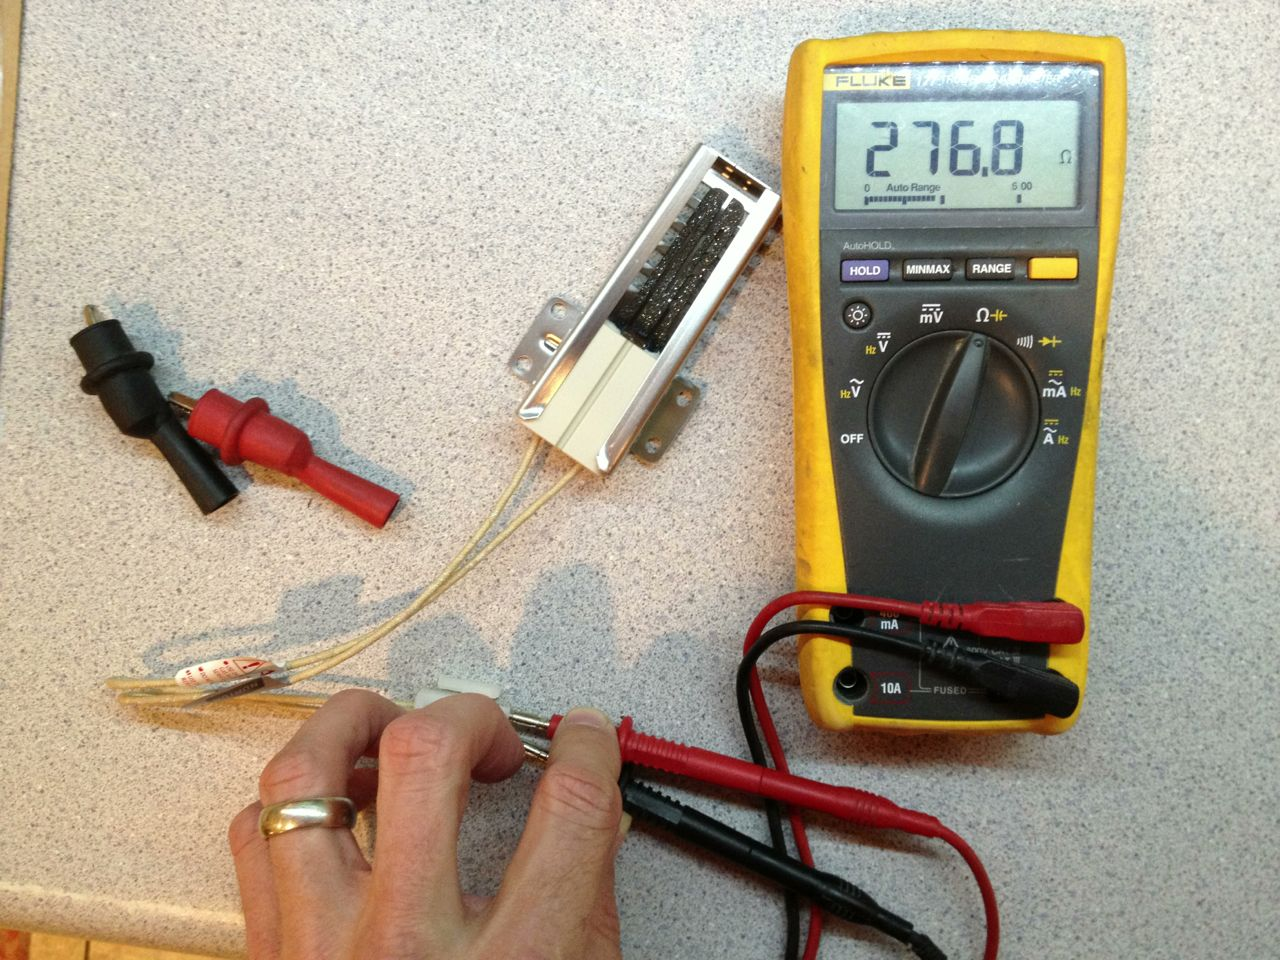 How To Replace The Igniter On A Ge Xl44 Oven Share Your Repair Wiring Diagram Resistance Reading Of New